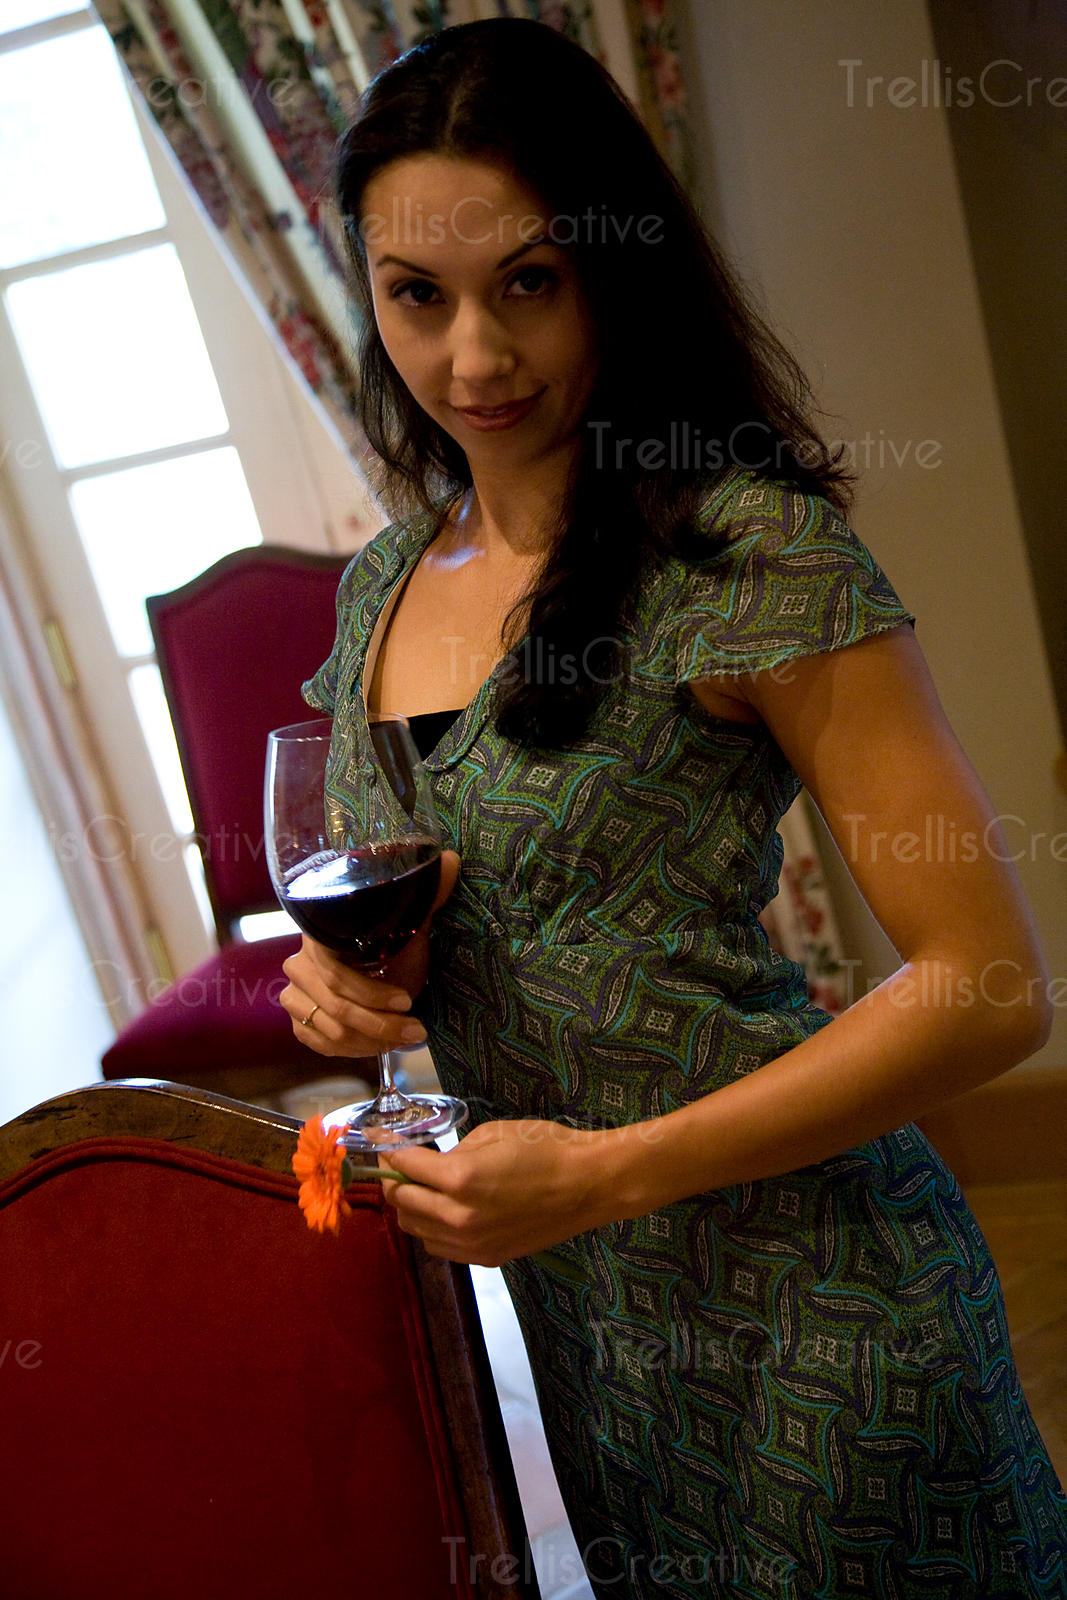 smiling young woman holding glass of wine